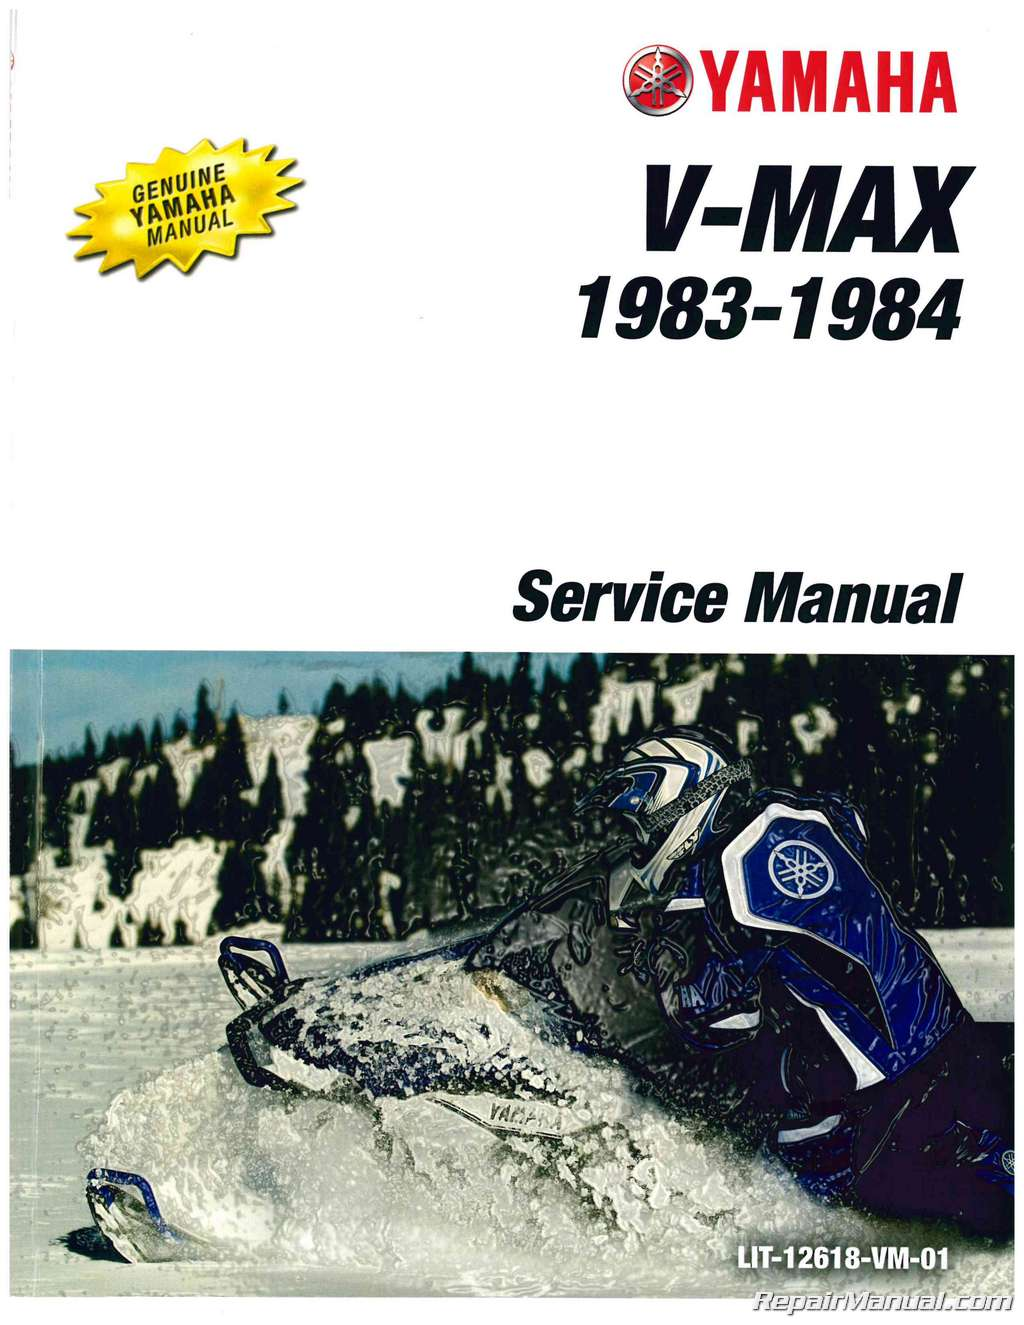 Official 1983 1984 Yamaha Vmax Vmx540gh Snowmobile Factory Service Manual Lit 12618 Vm 01 on yamaha golf cart repair manual